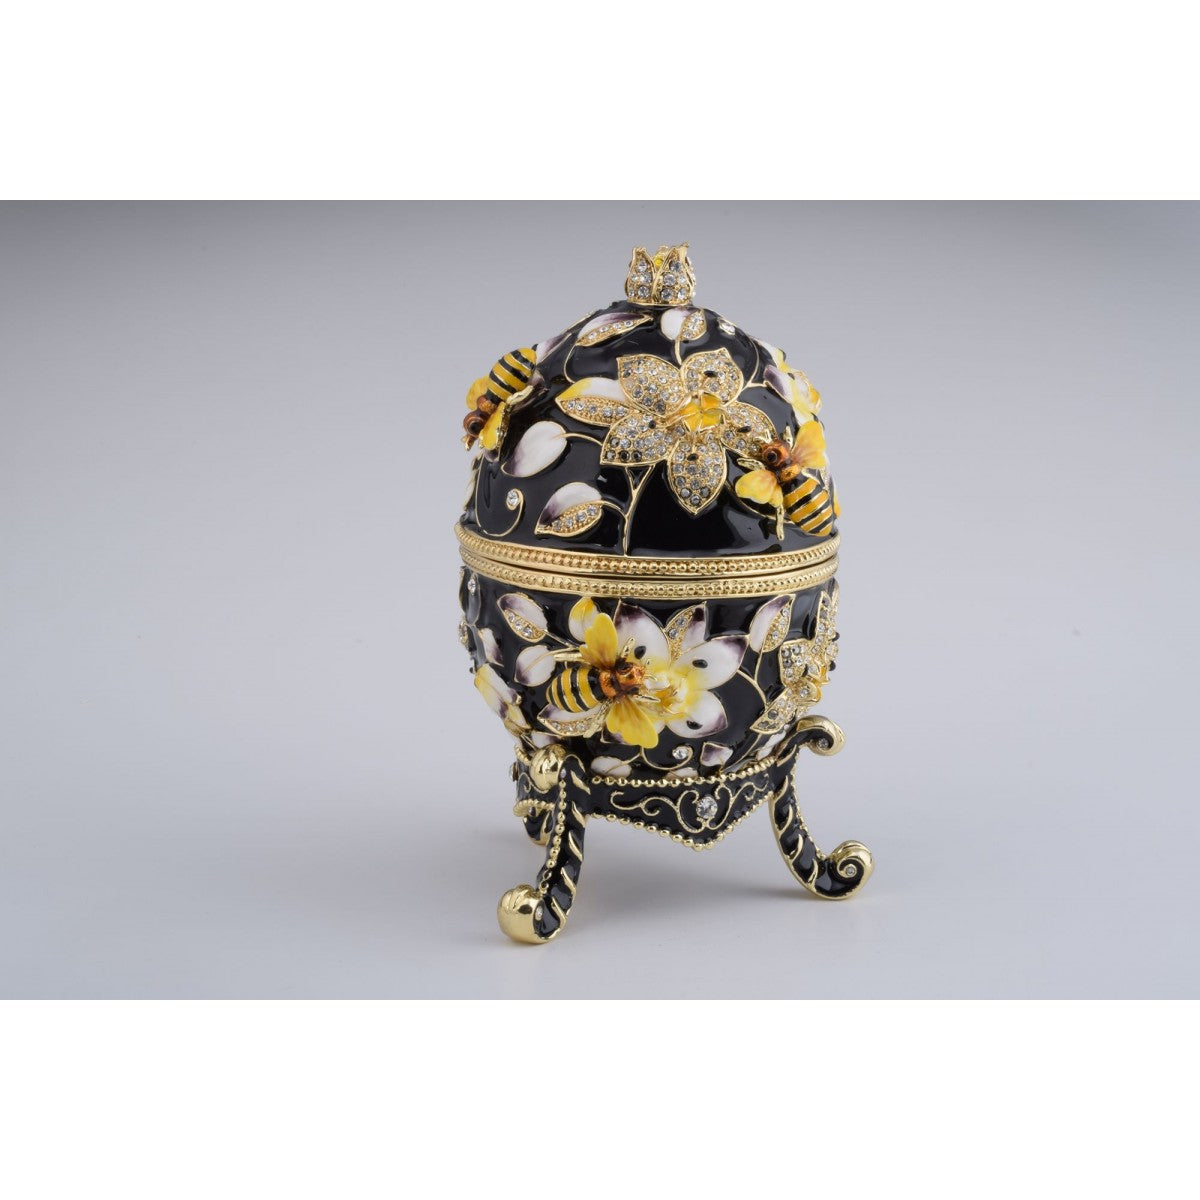 Black Faberge Style Egg Decorated with Bees and Flowers Trinket Box by Keren Kopal